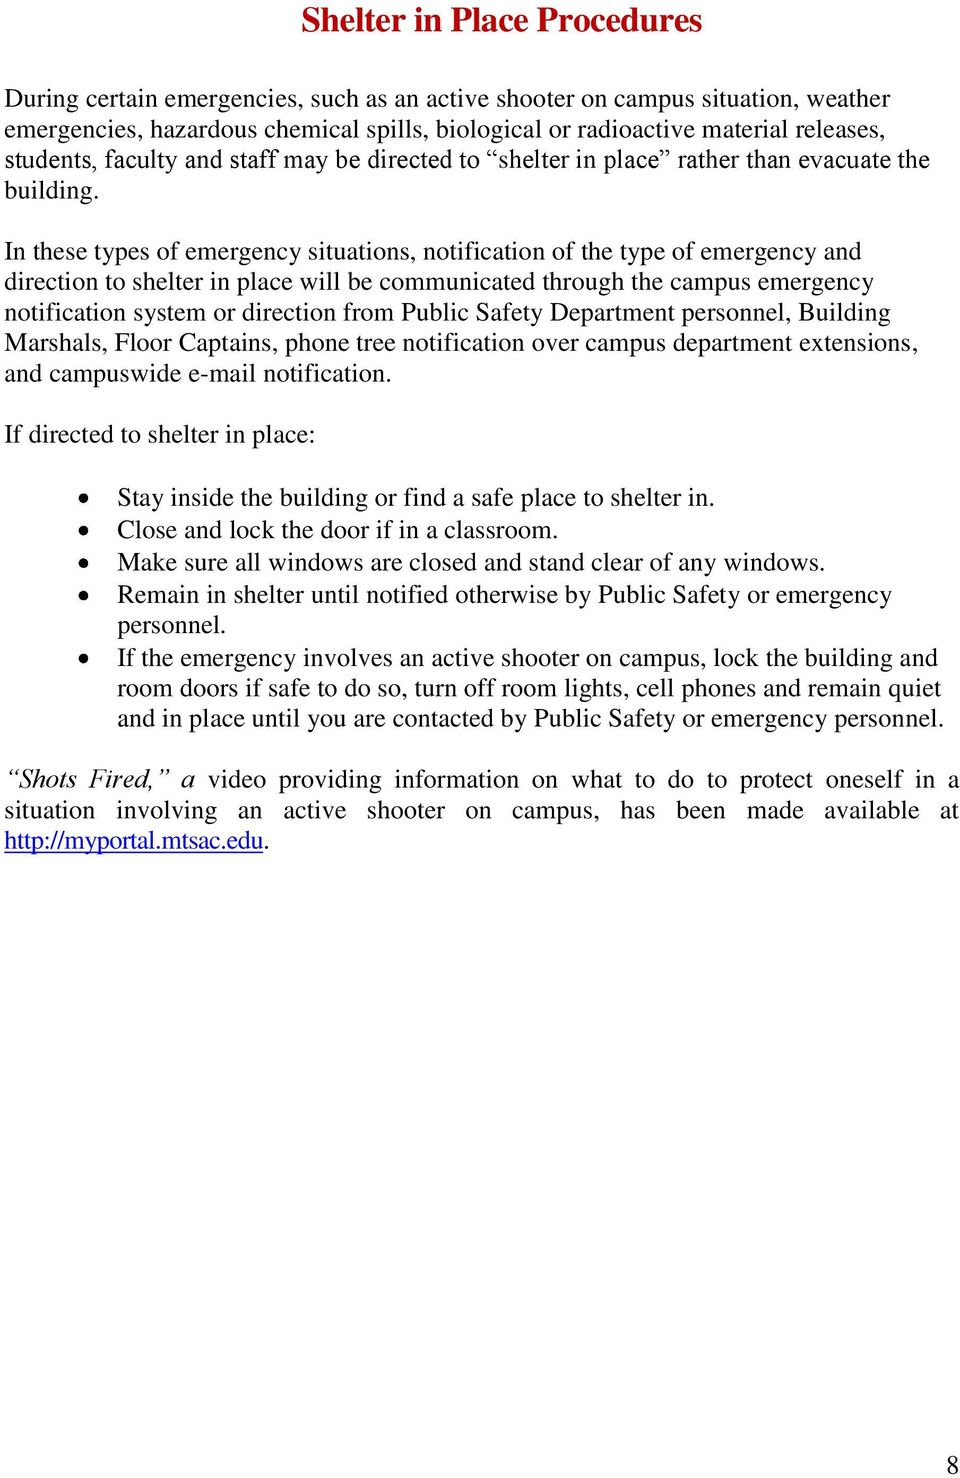 In these types of emergency situations, notification of the type of emergency and direction to shelter in place will be communicated through the campus emergency notification system or direction from